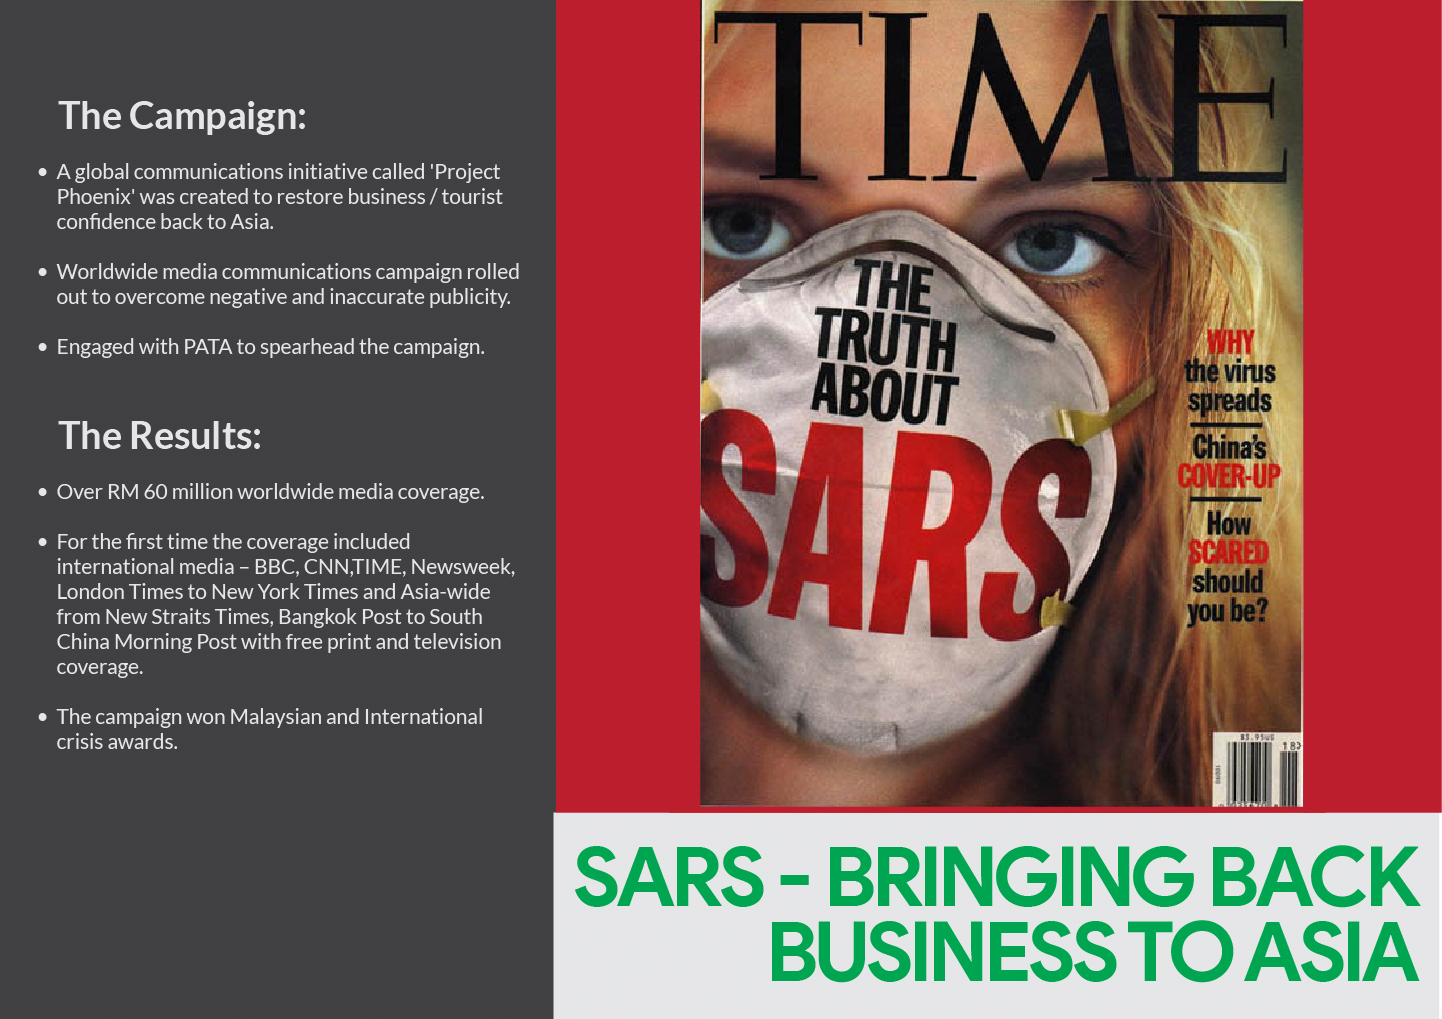 SARS_GO COMMUNICATIONS